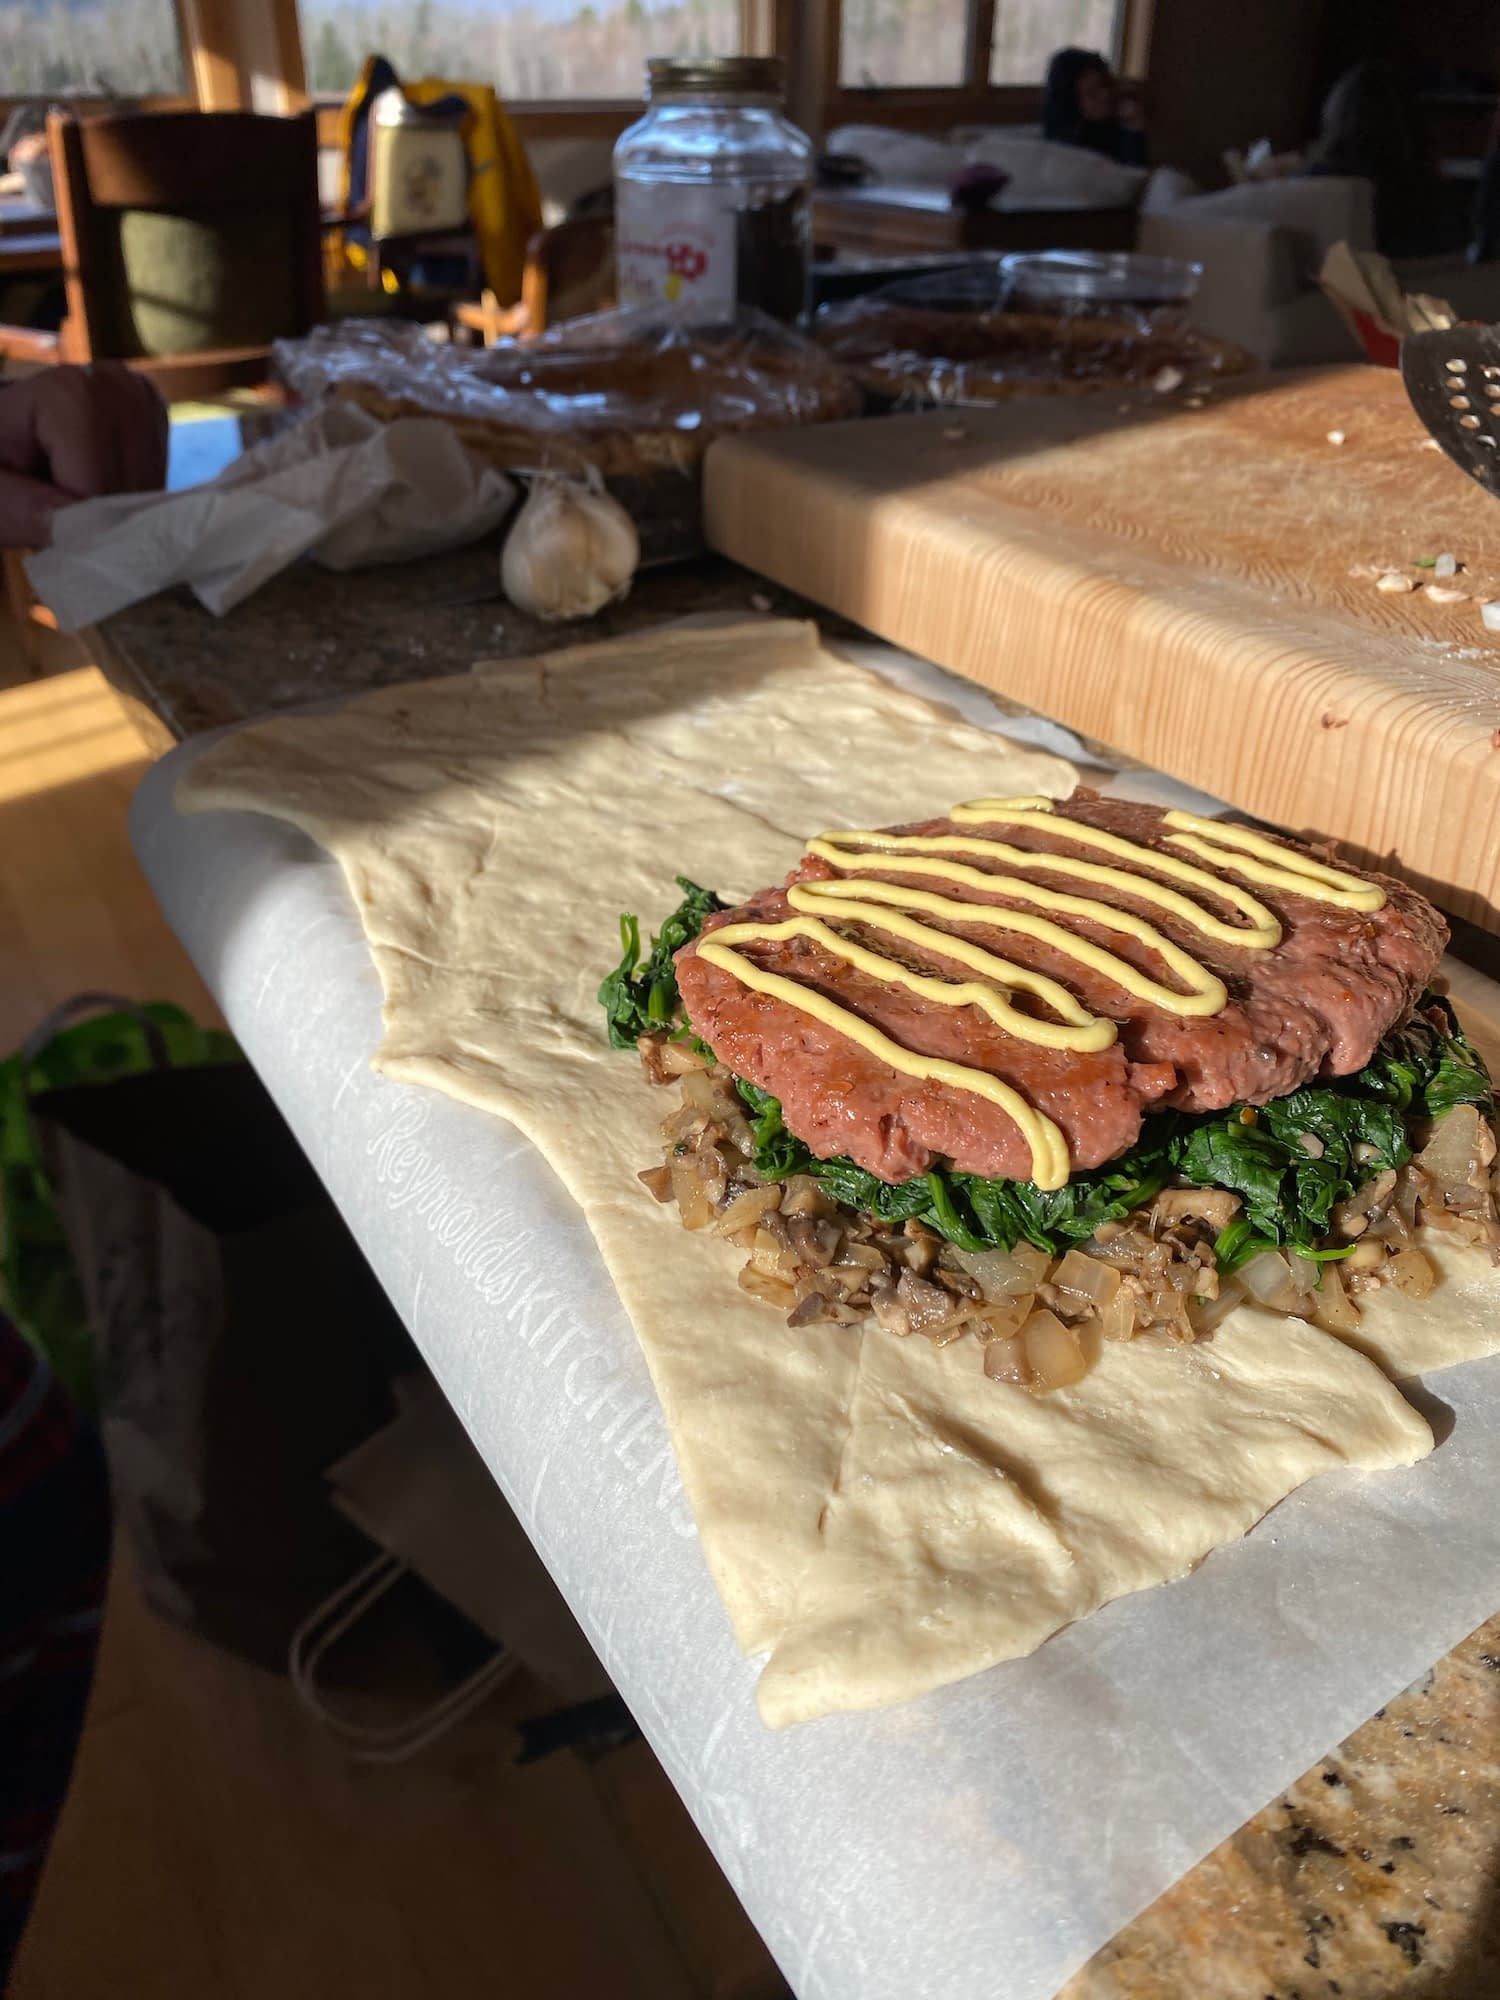 Beyond Meat Wellington - Vegan Thanksgiving Dish